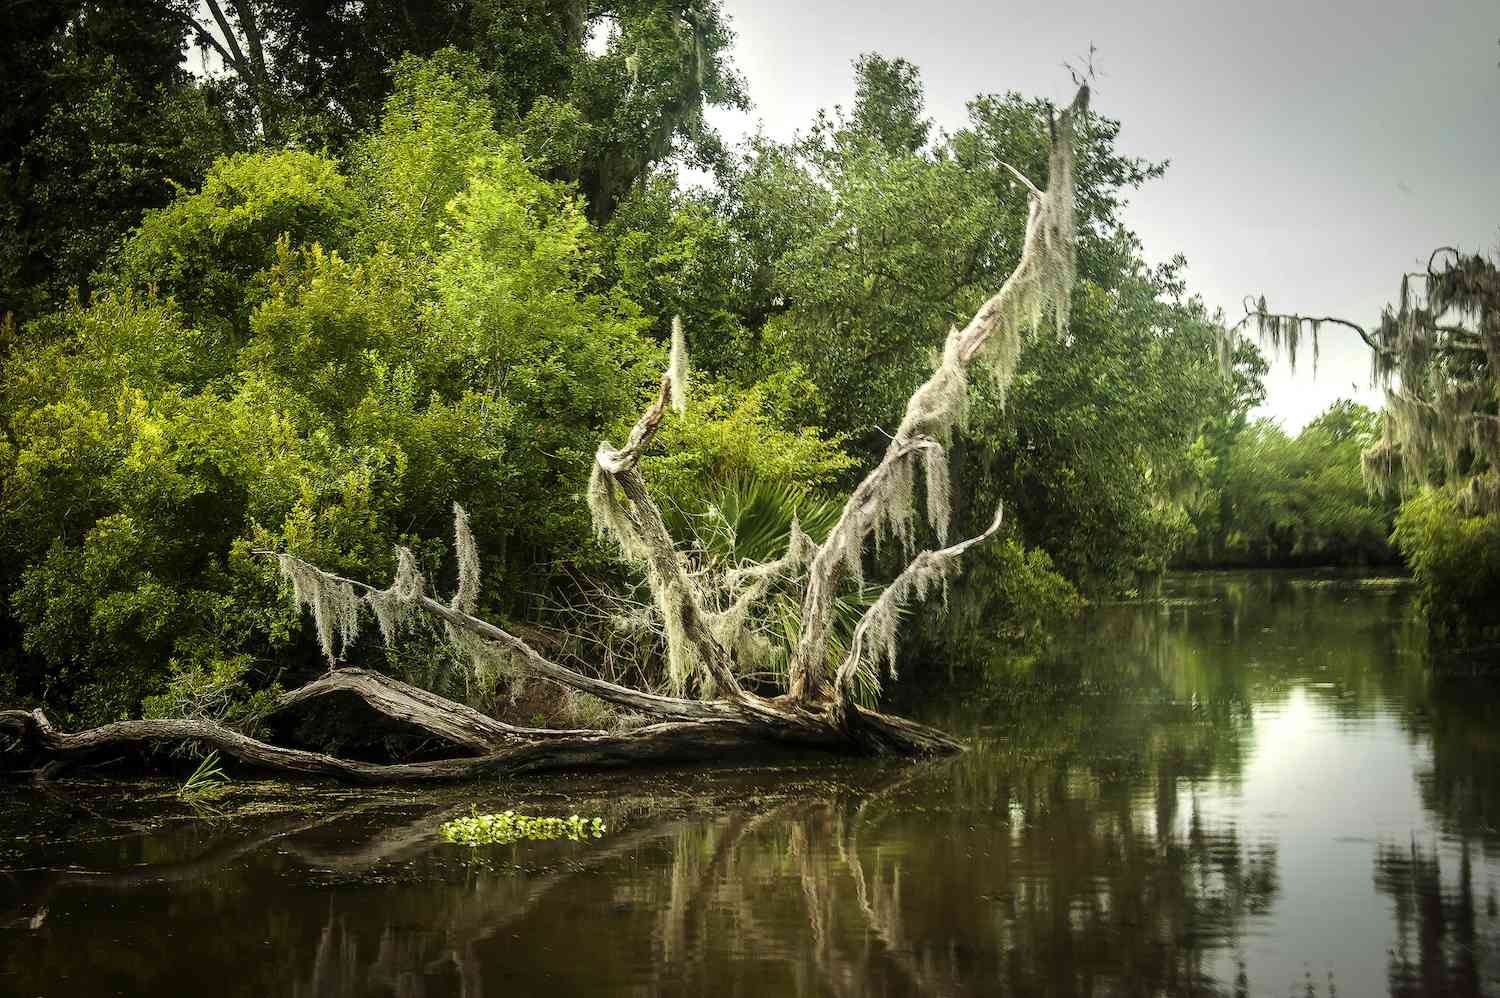 A moss-covered tree in a swamp at Barataria Preserve.